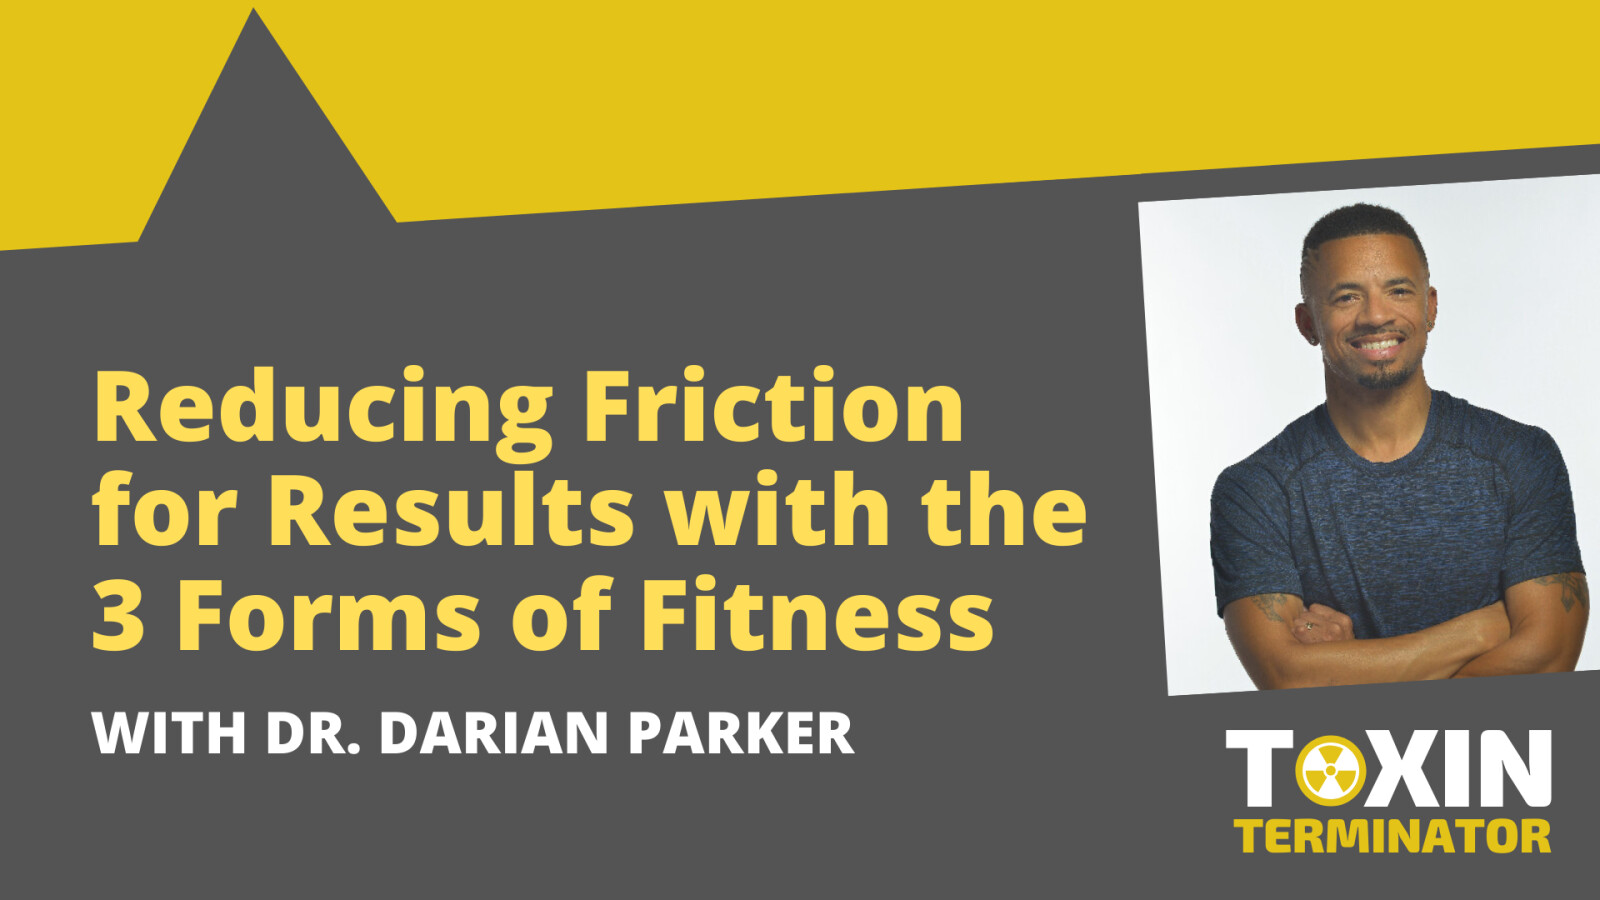 Reducing Friction for Results with the 3 Forms of Fitness with Dr. Darian Parker